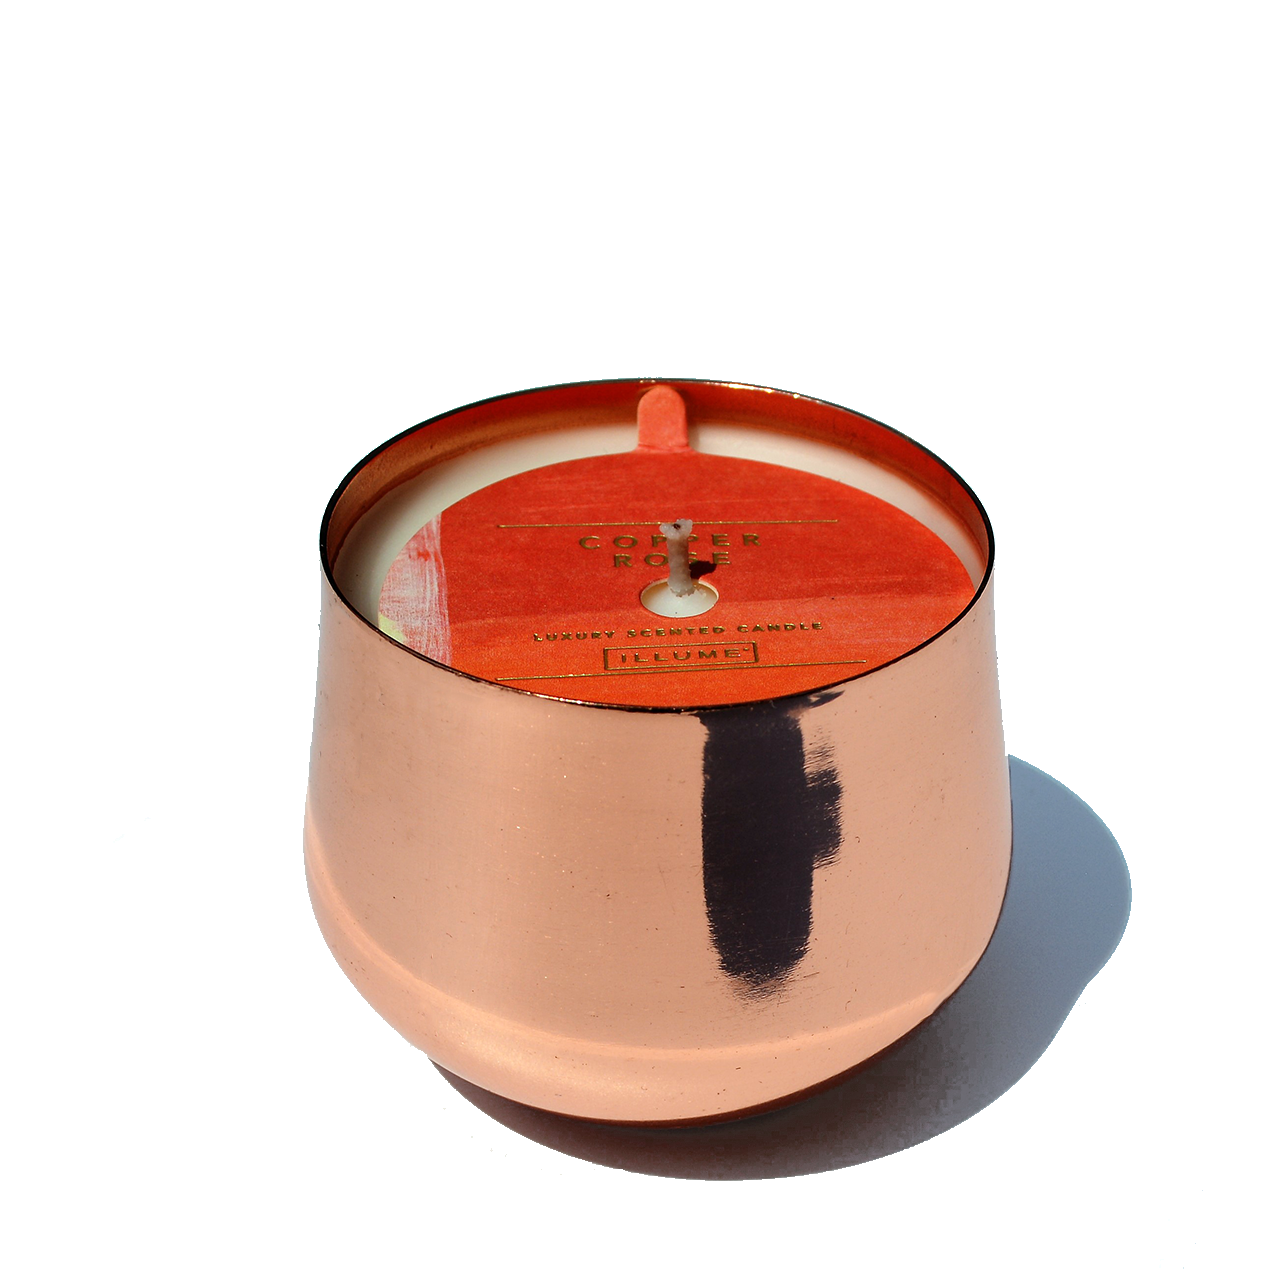 Copper Rose Talisman Candle-Home - Decor - Candles - Holiday-ILLUME-Peccadilly